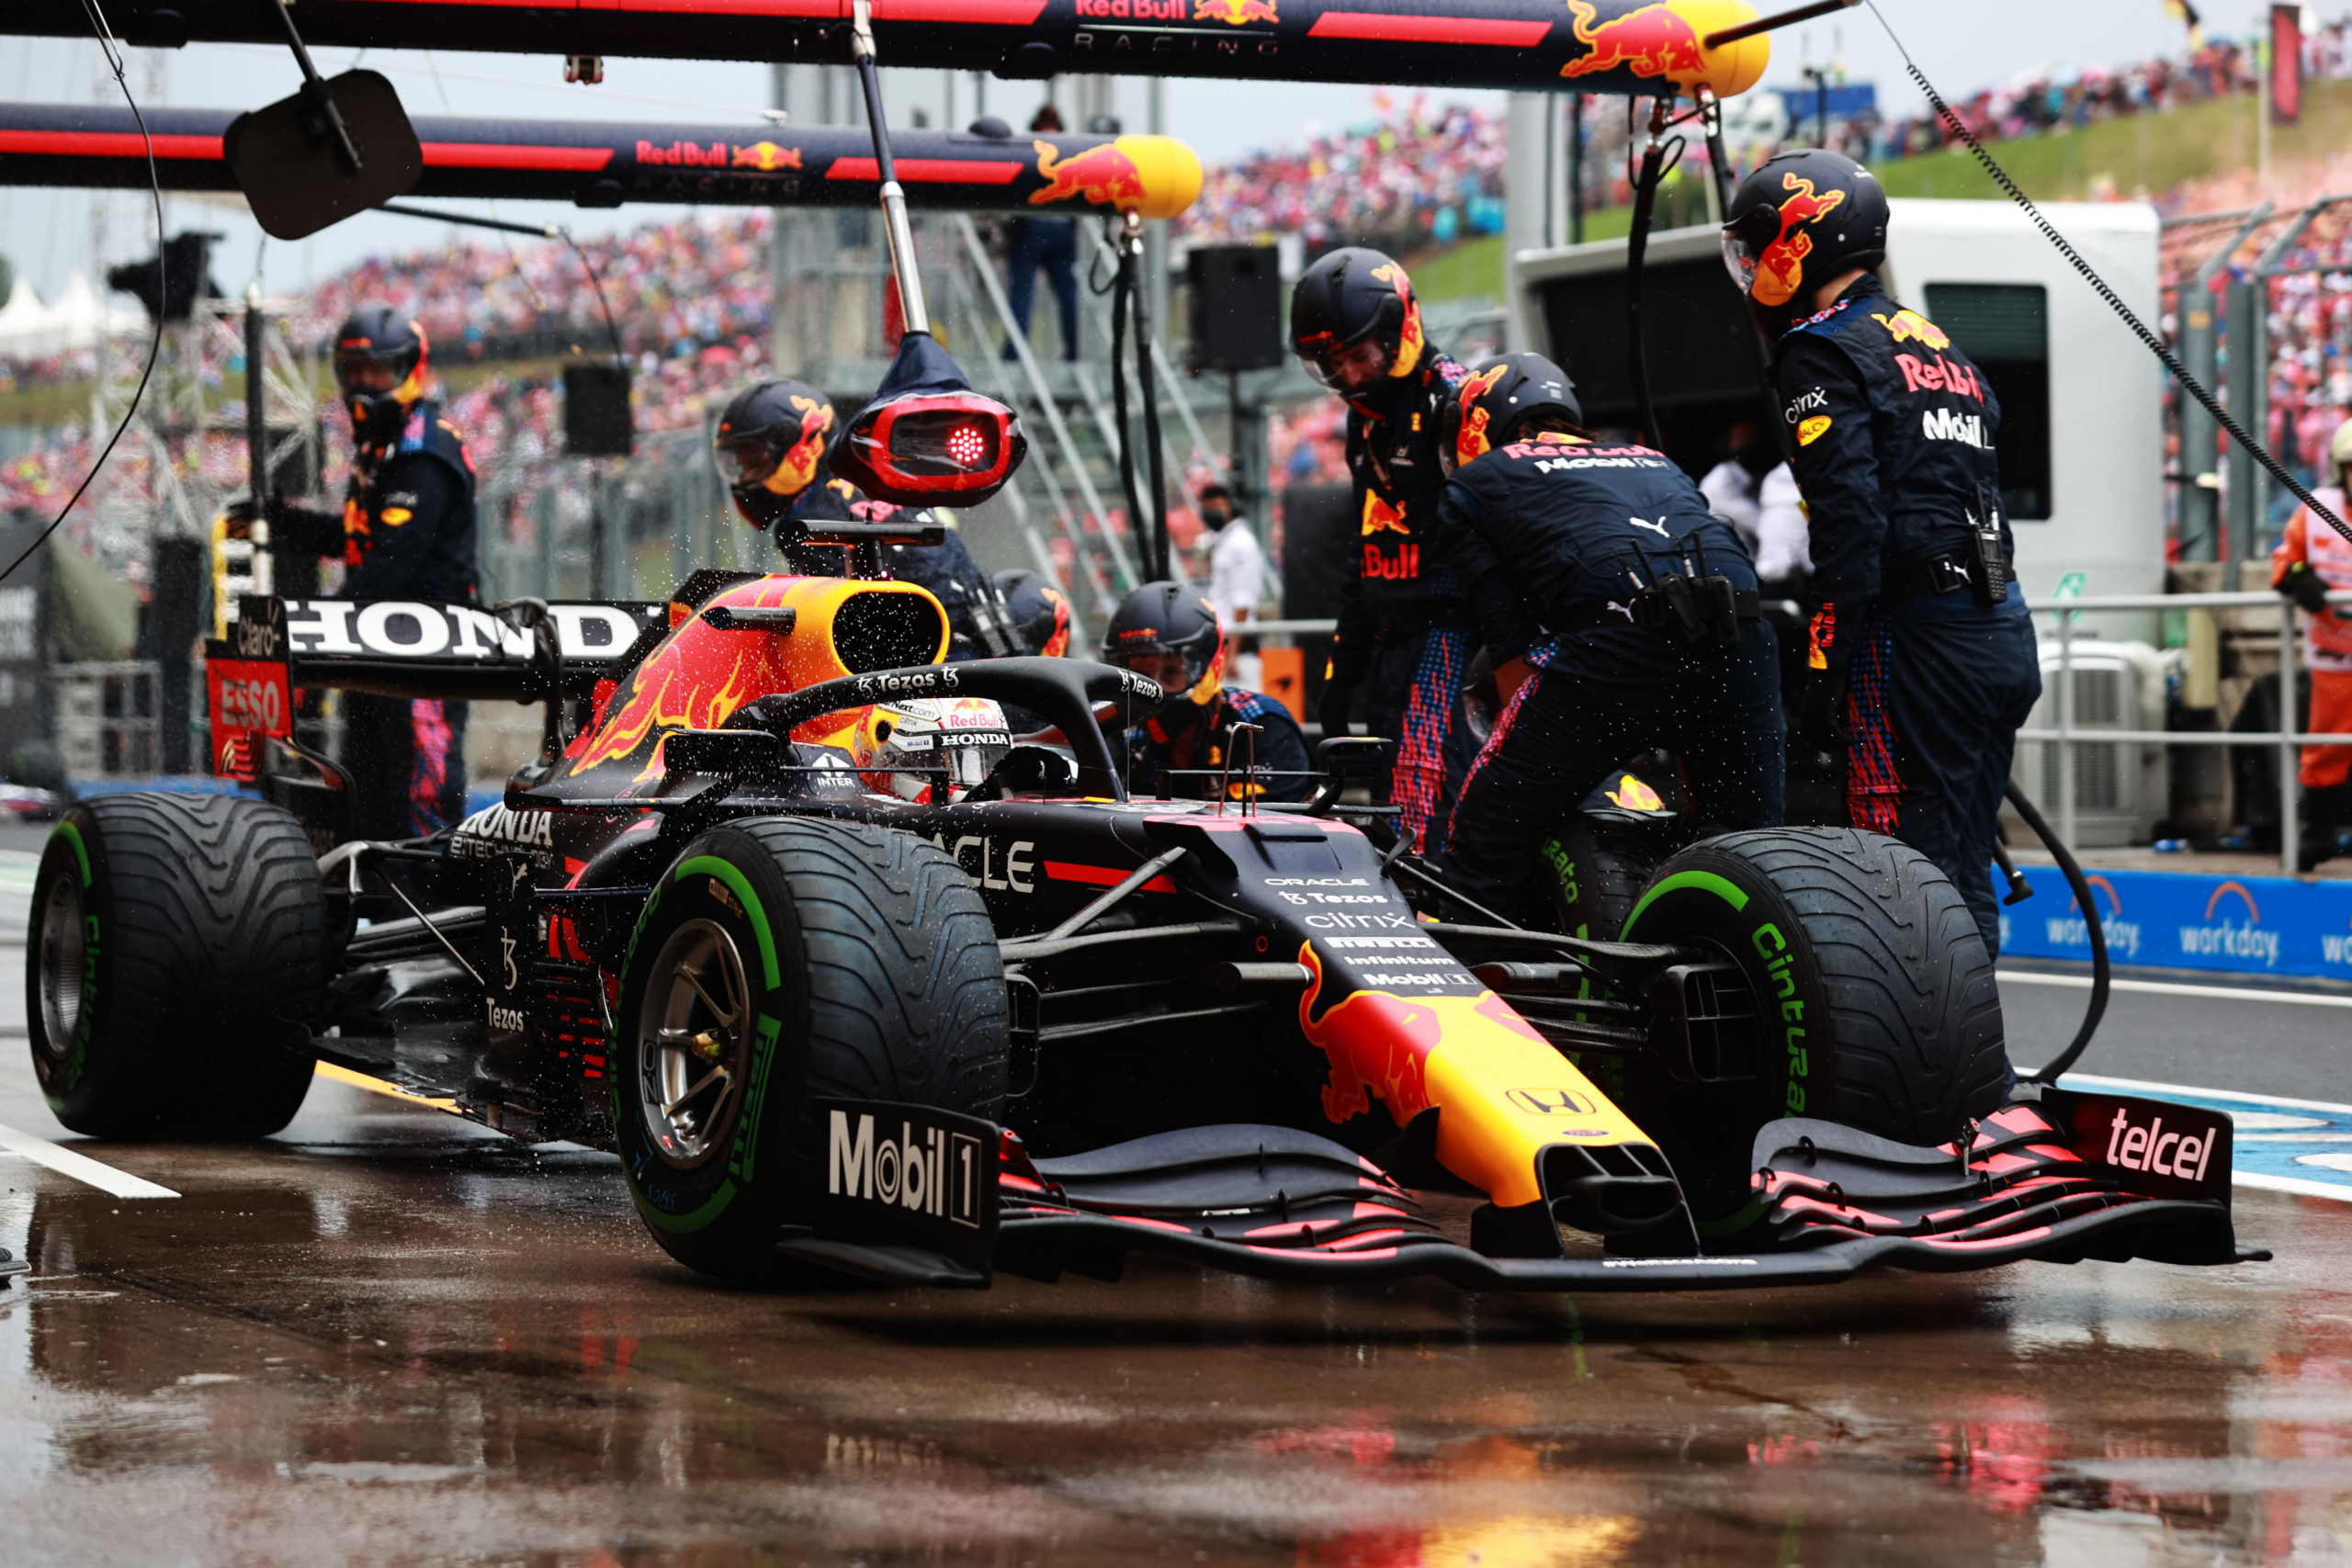 BUDAPEST, HUNGARY - AUGUST 01: Max Verstappen of the Netherlands driving the (33) Red Bull Racing RB16B Honda makes a pitstop during the F1 Grand Prix of Hungary at Hungaroring on August 01, 2021 in Budapest, Hungary. (Photo by Mark Thompson/Getty Images) // Getty Images / Red Bull Content Pool  // SI202108010408 // Usage for editorial use only //